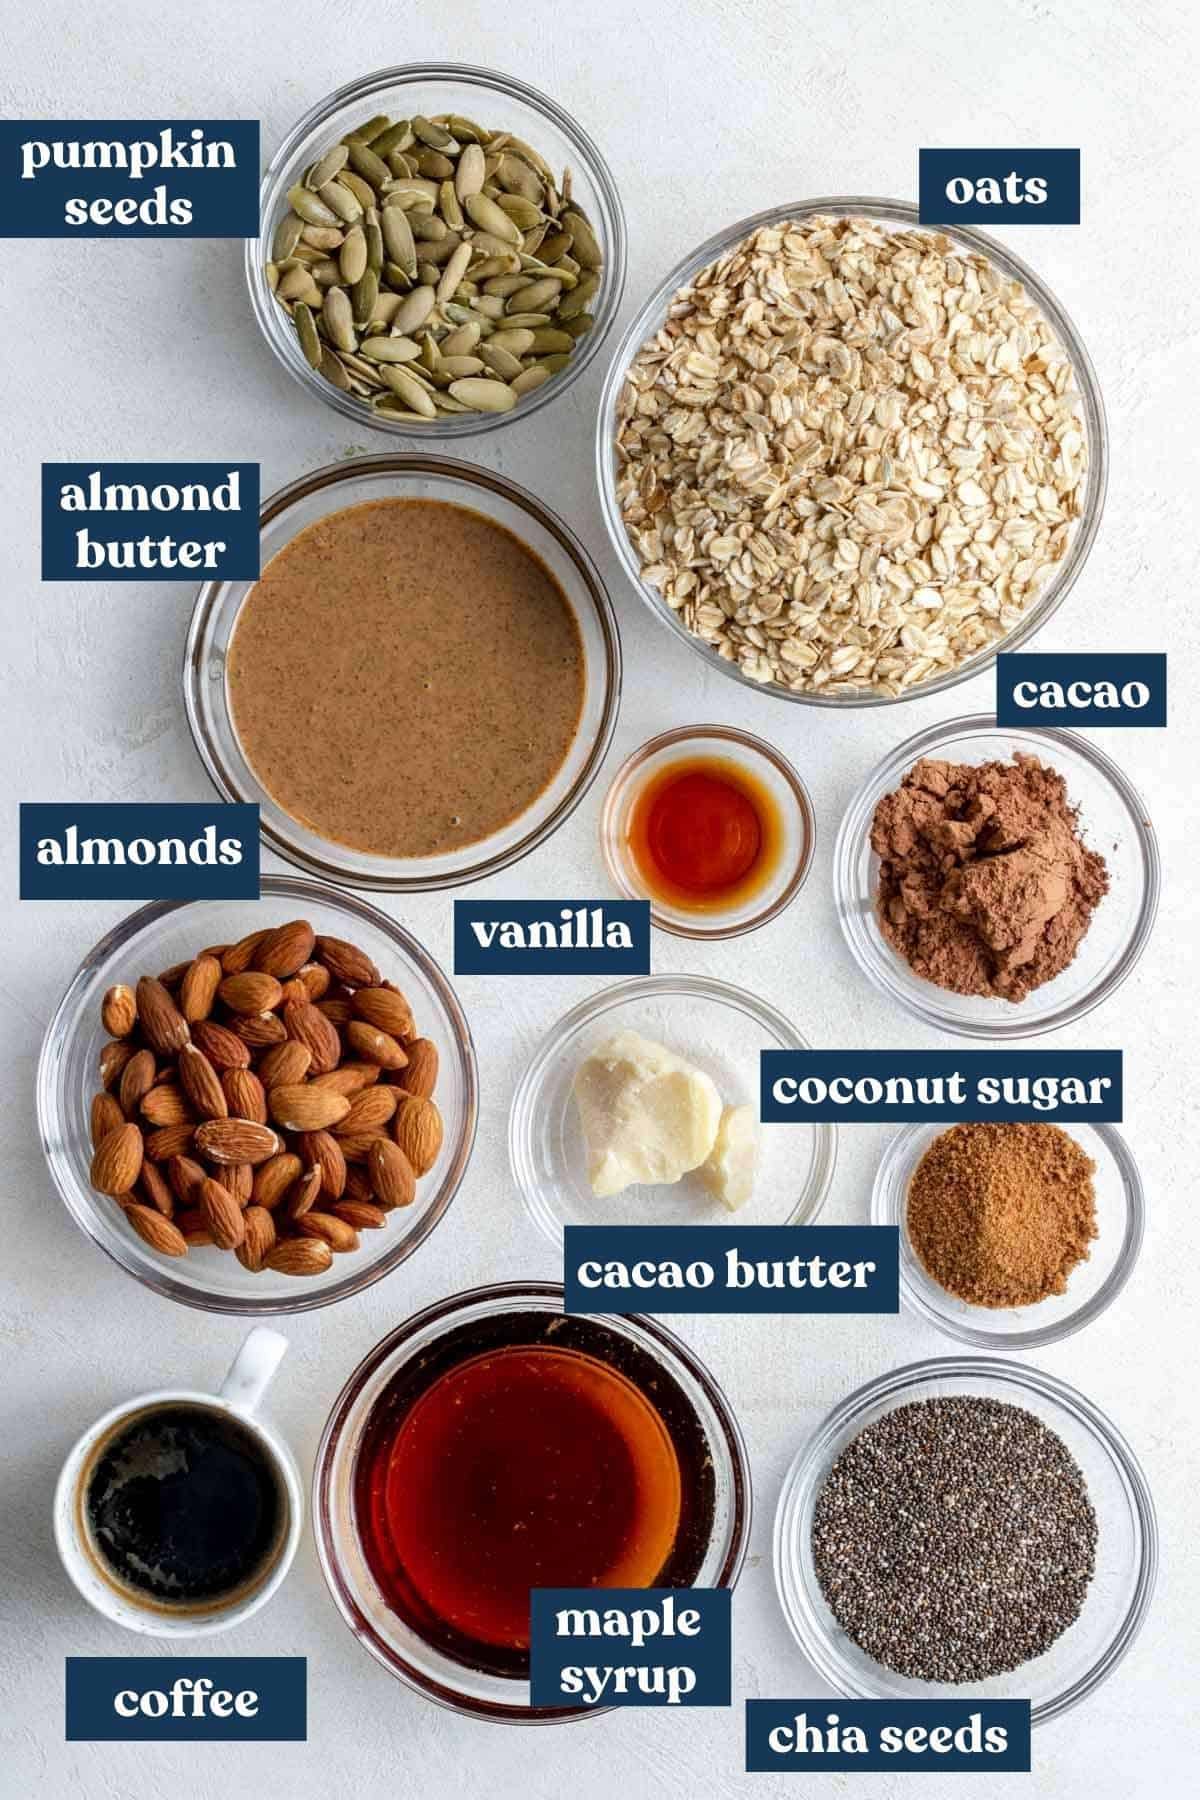 Ingredients needed for granola recipe measured into individual bowls and labeled.